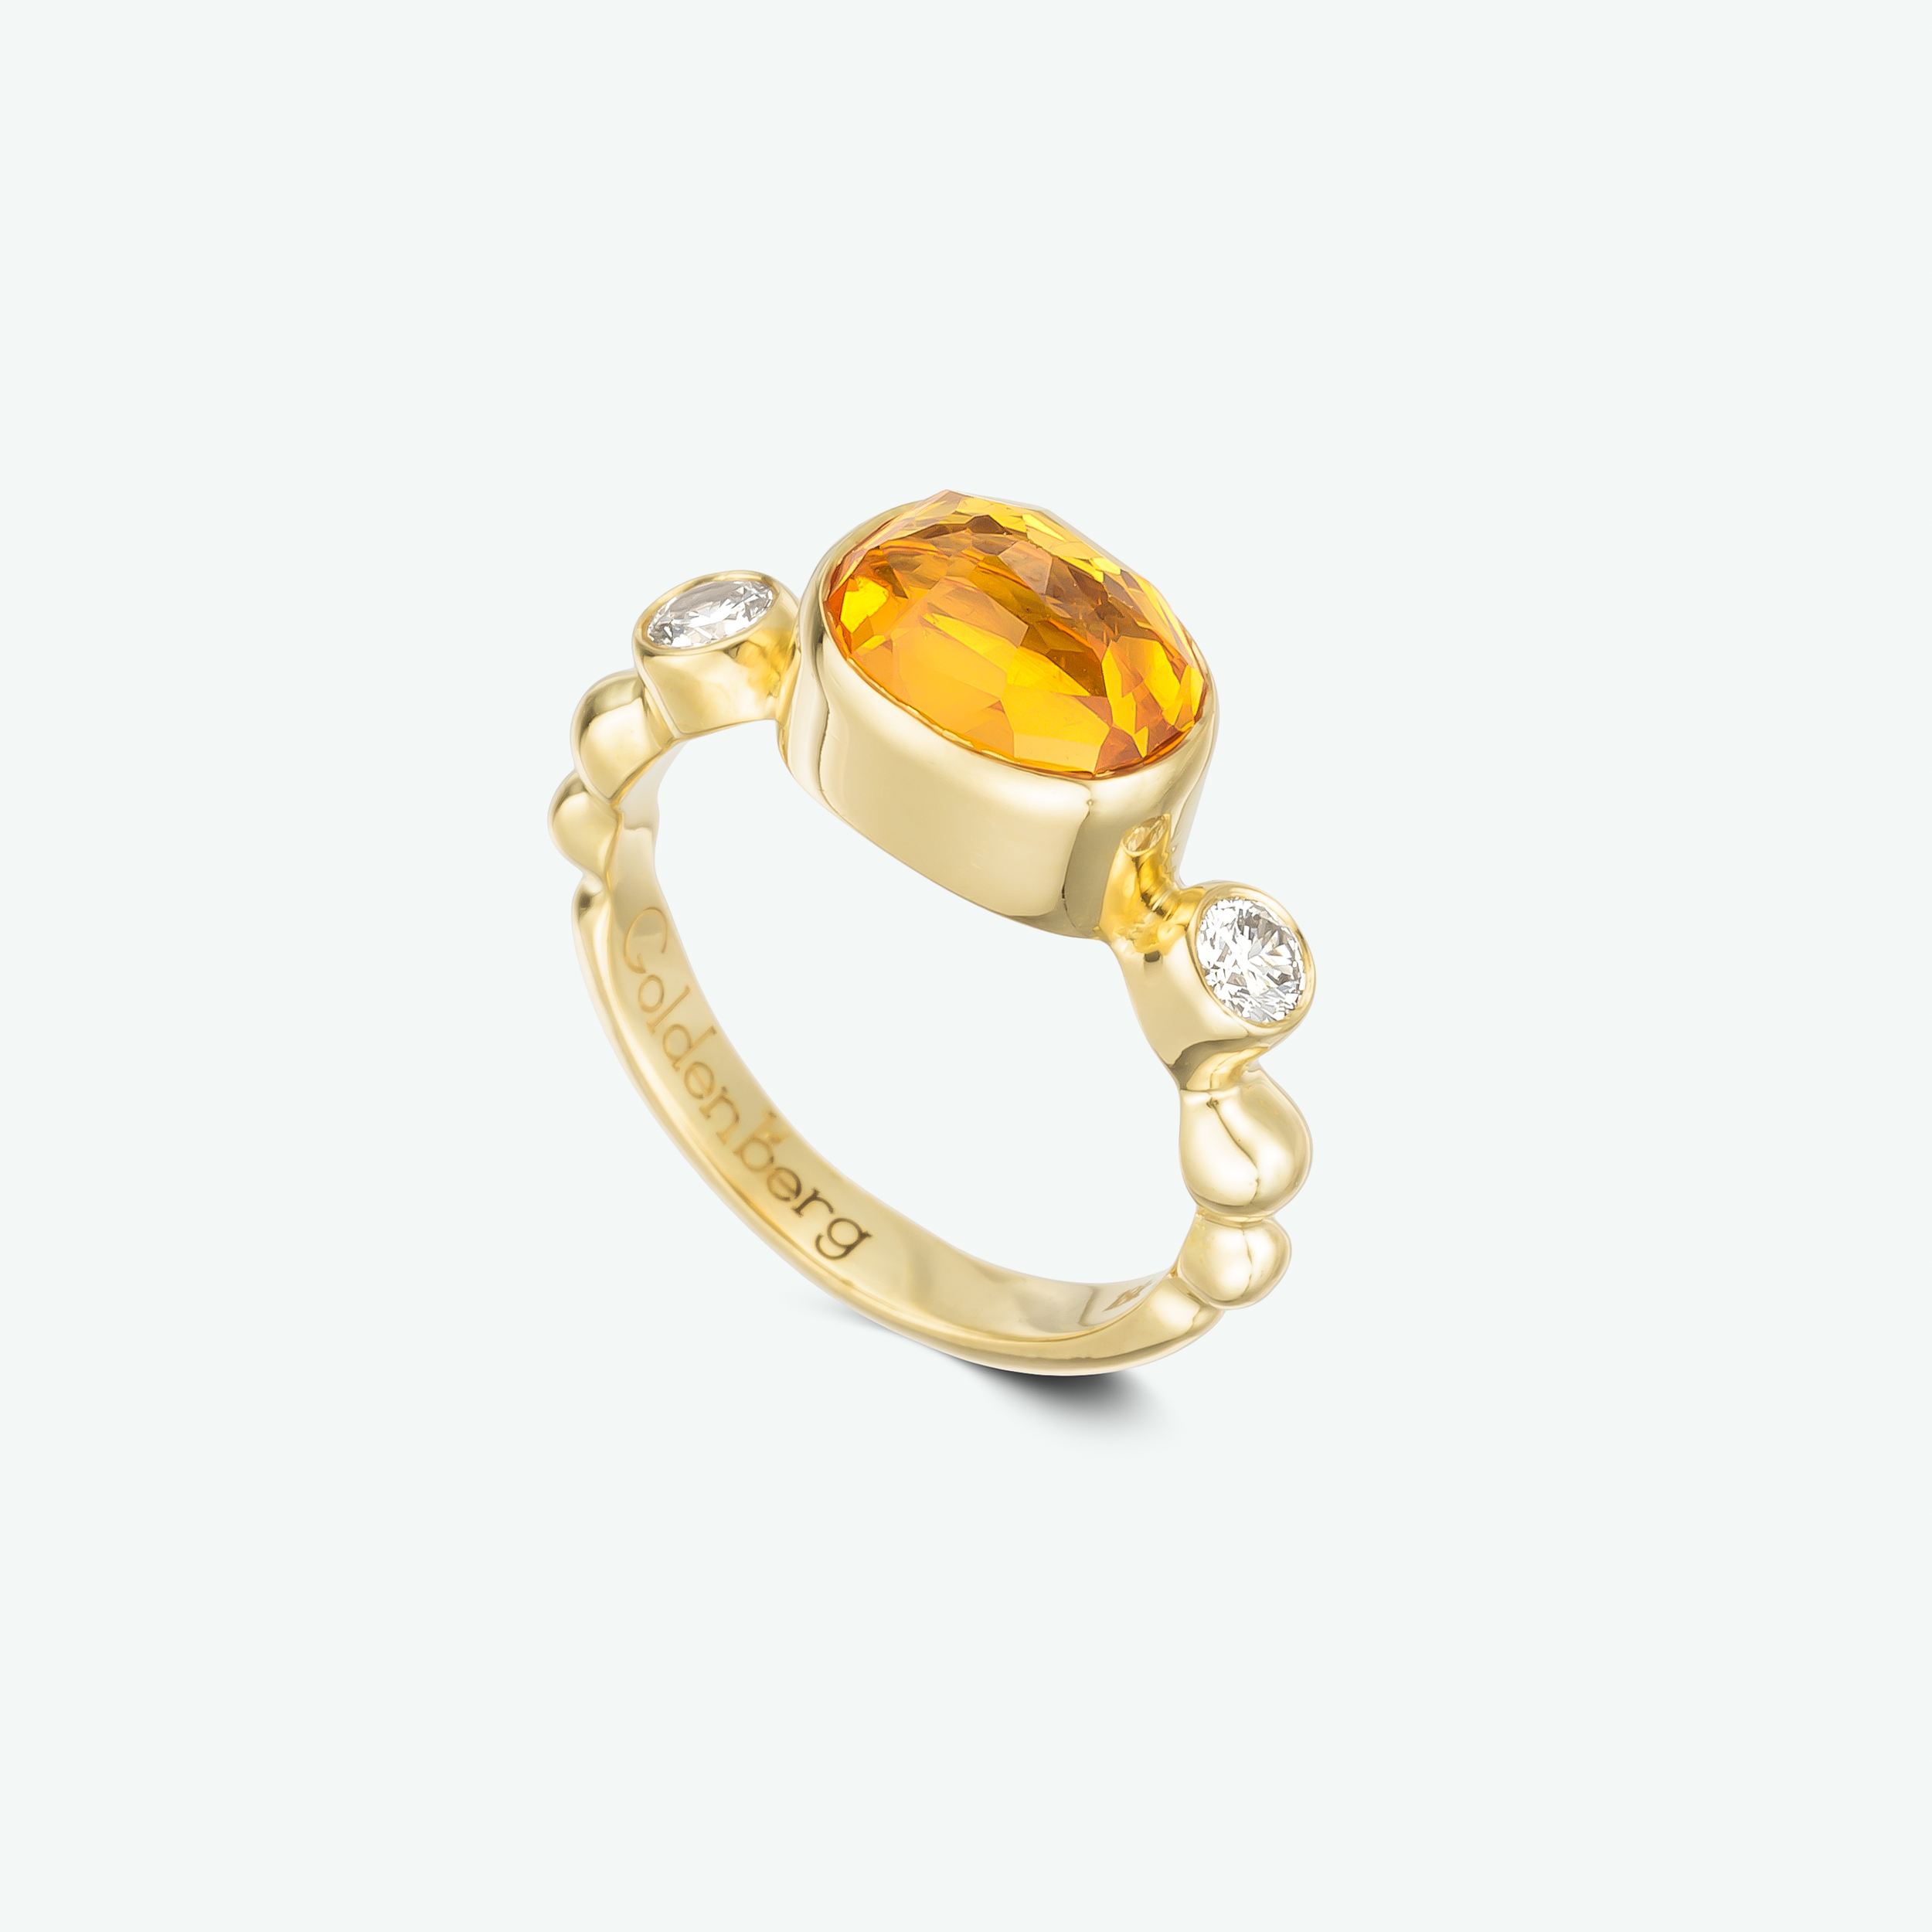 This beautiful ring was made by me and for me. Composed of 18K yellow gold and set with a beautiful spasertite garnet and a golden diamond on each side. D: 0.22 ct.  SG: 2.00 ct.